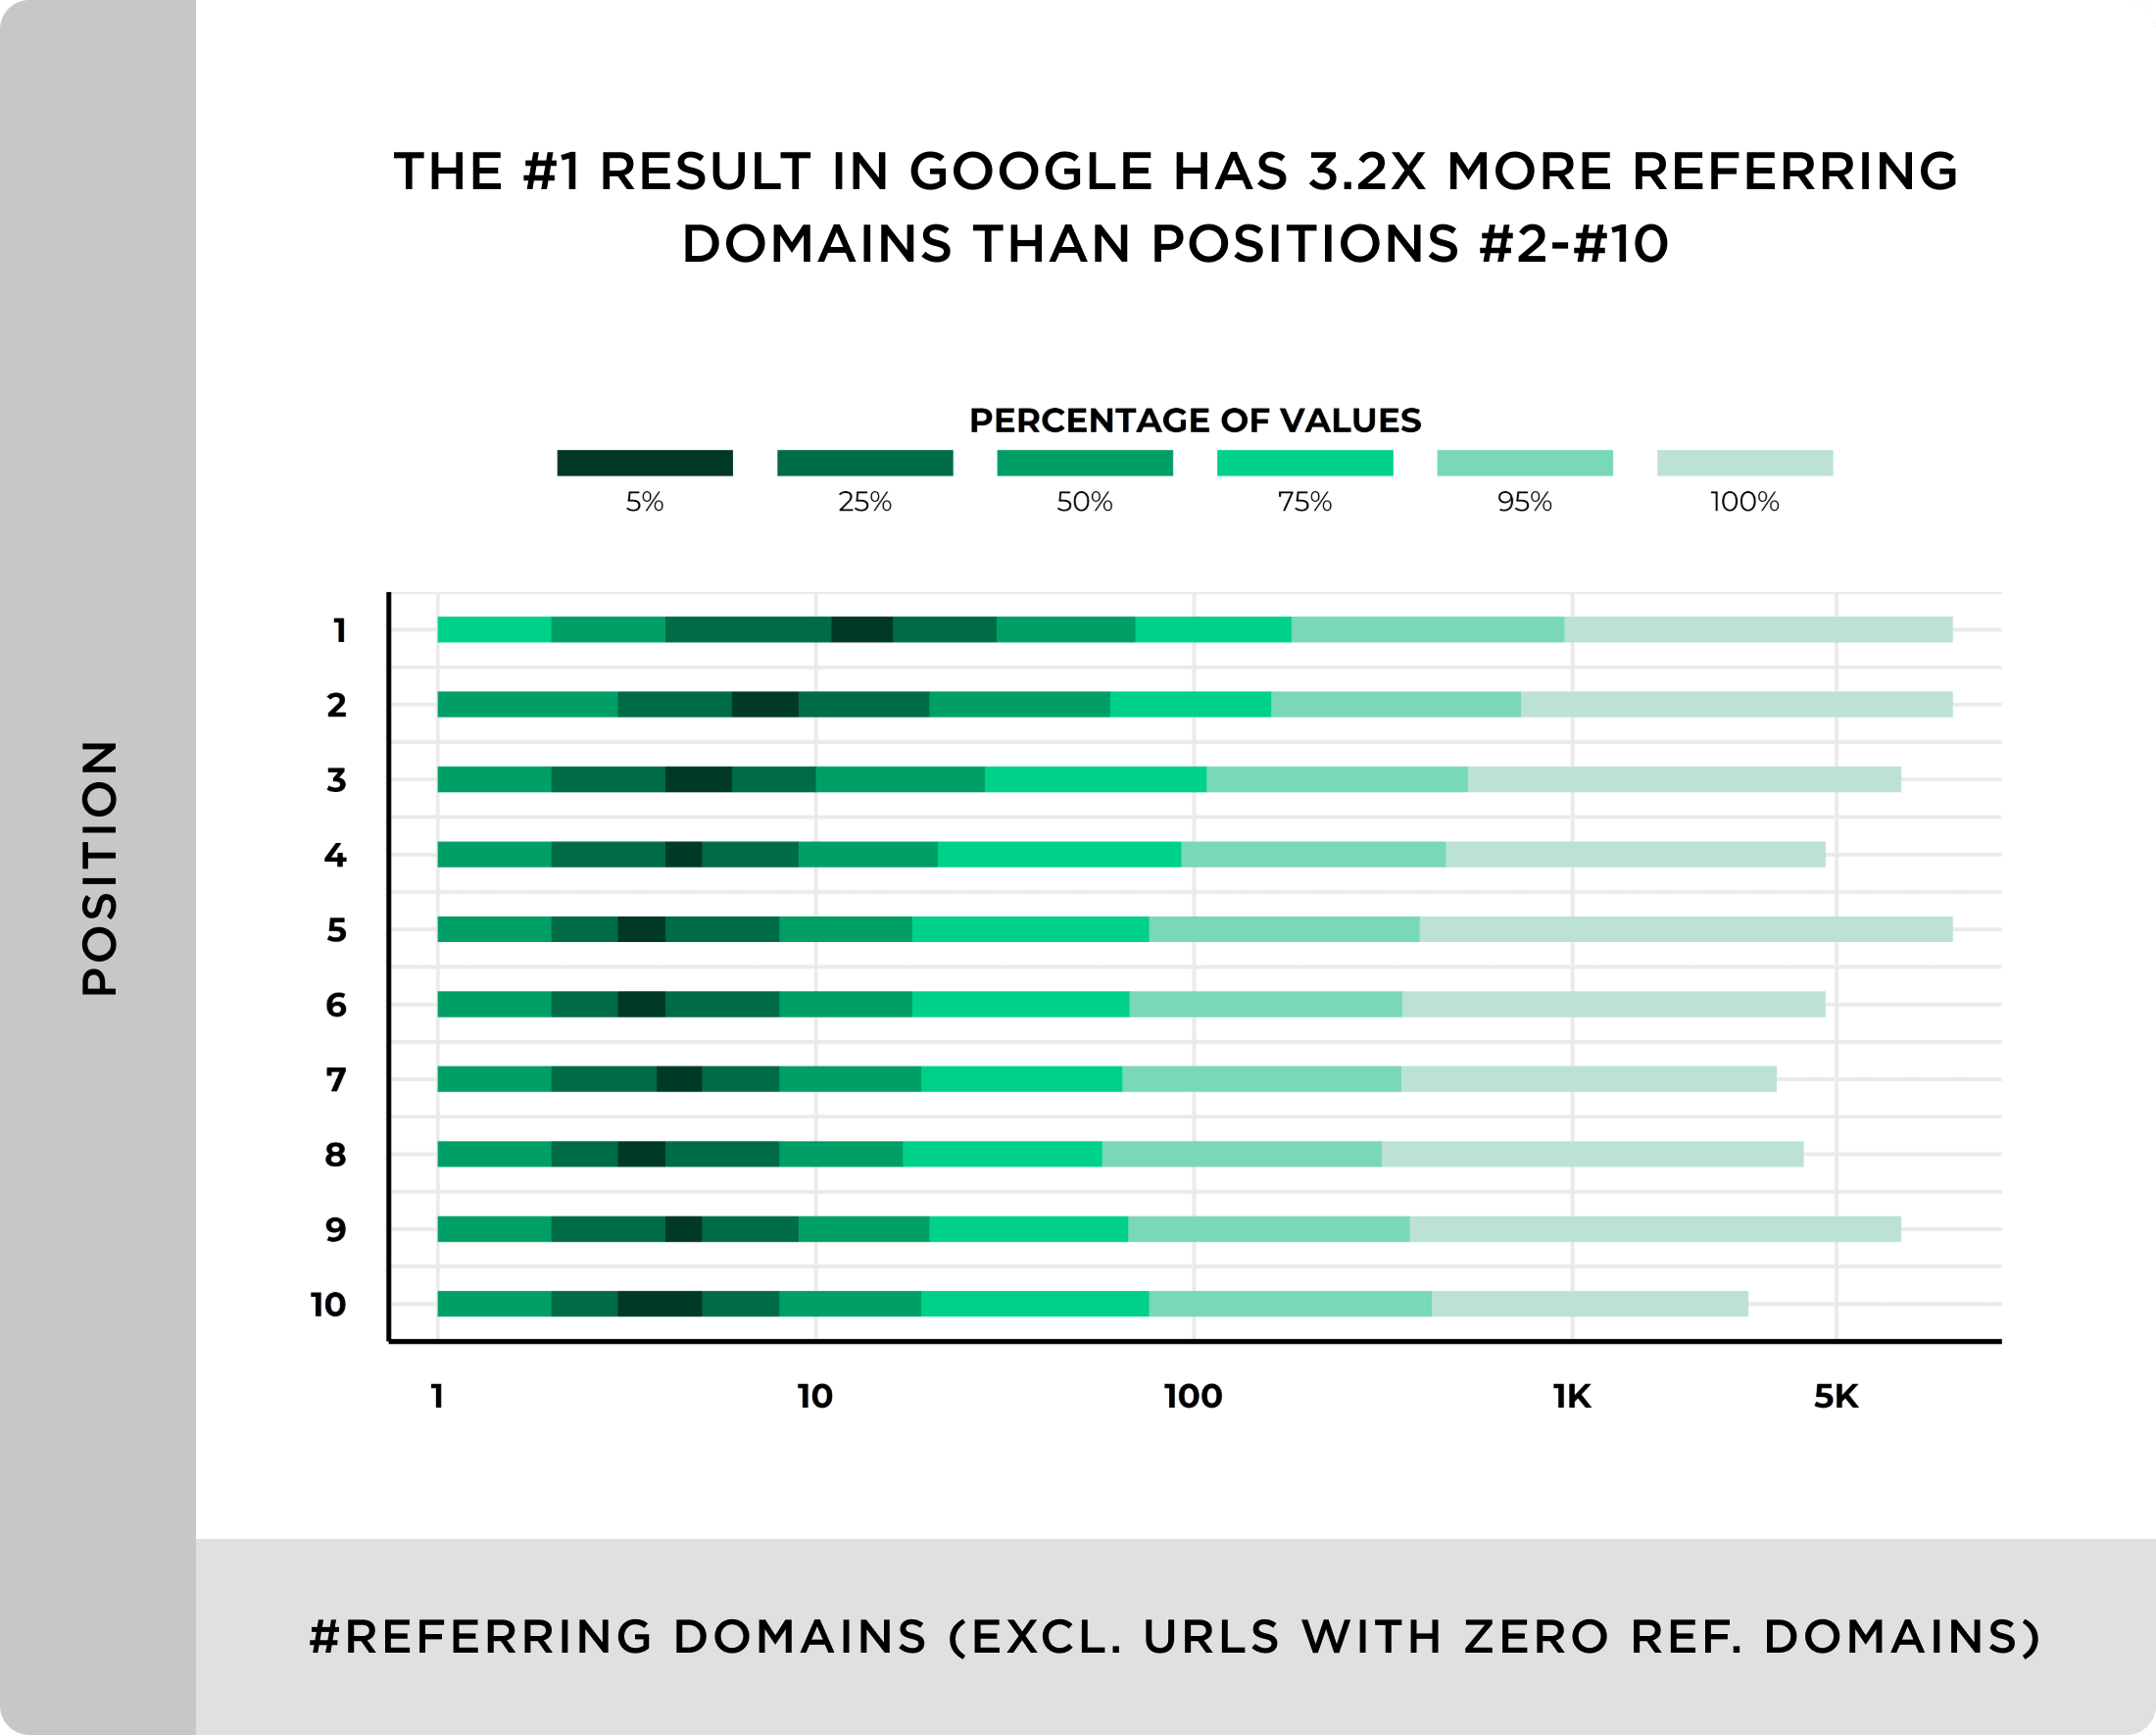 The number 1 result in Google has 3X more referring domains than positions 2-10